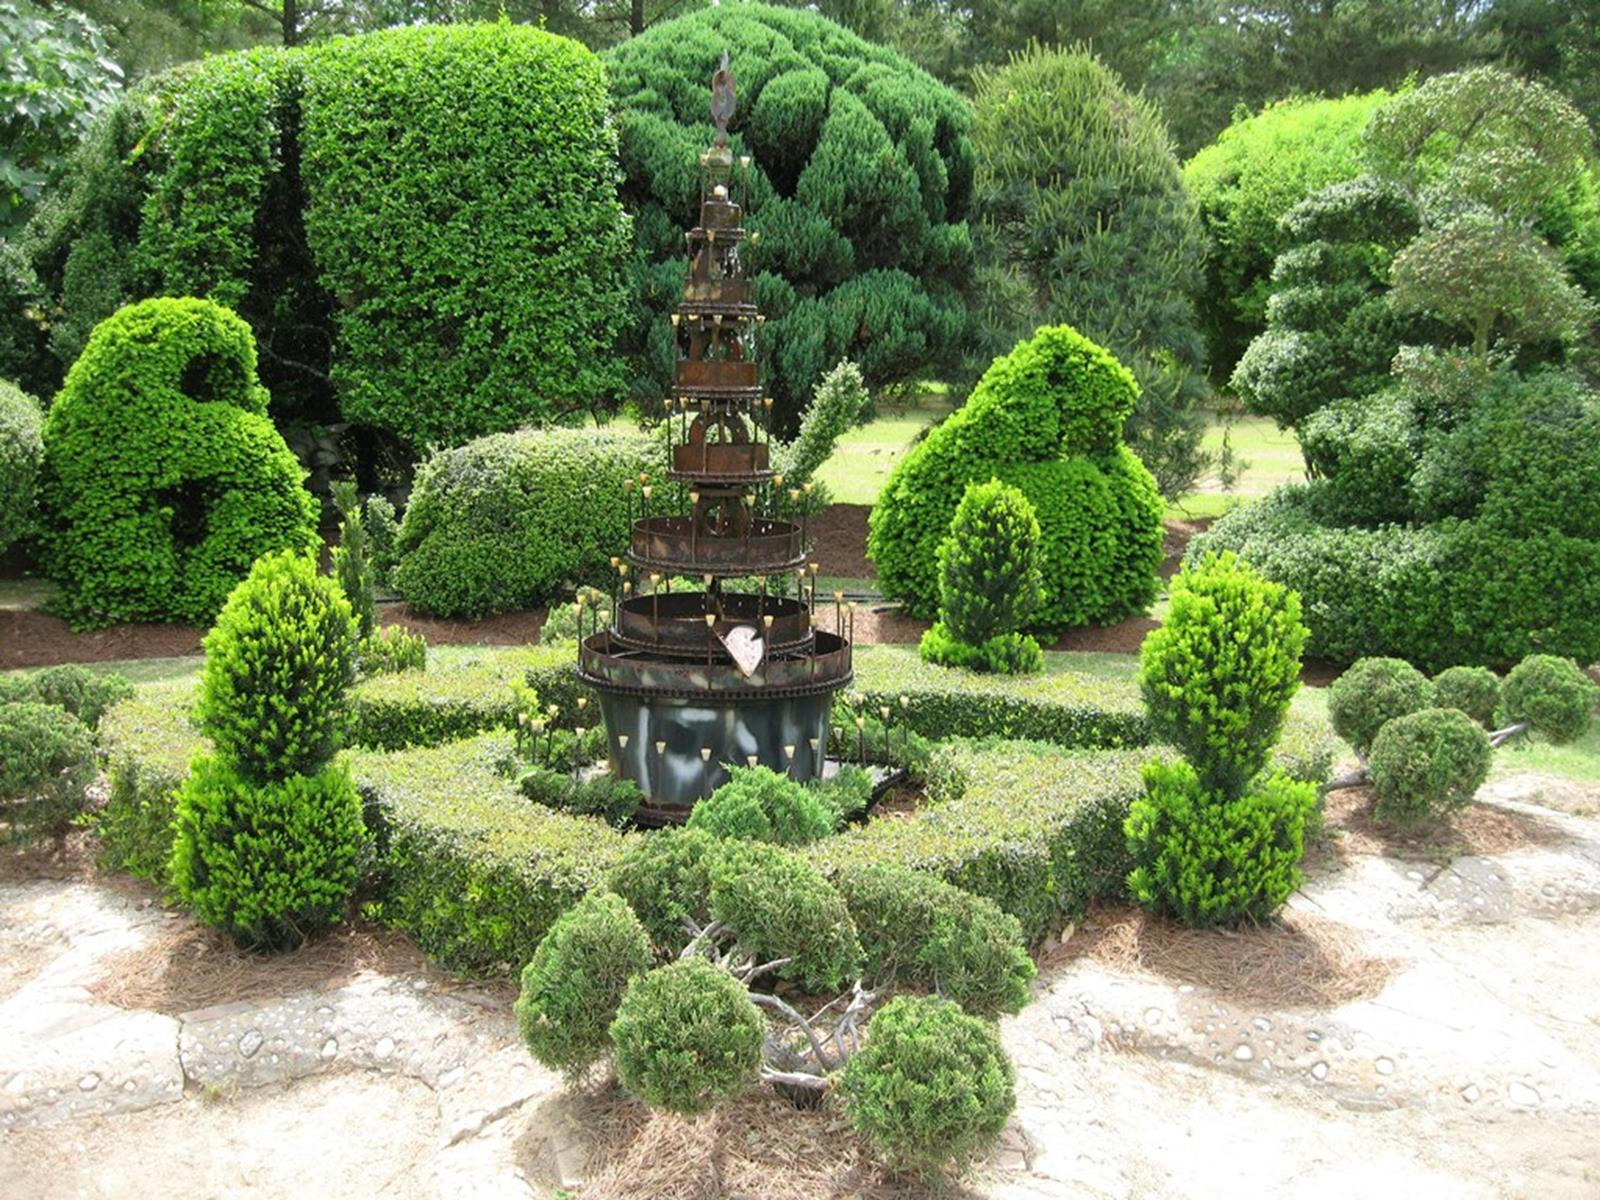 Pearl Fryar Topiary Garden. Credit: Florence Convention & Visitors Bureau